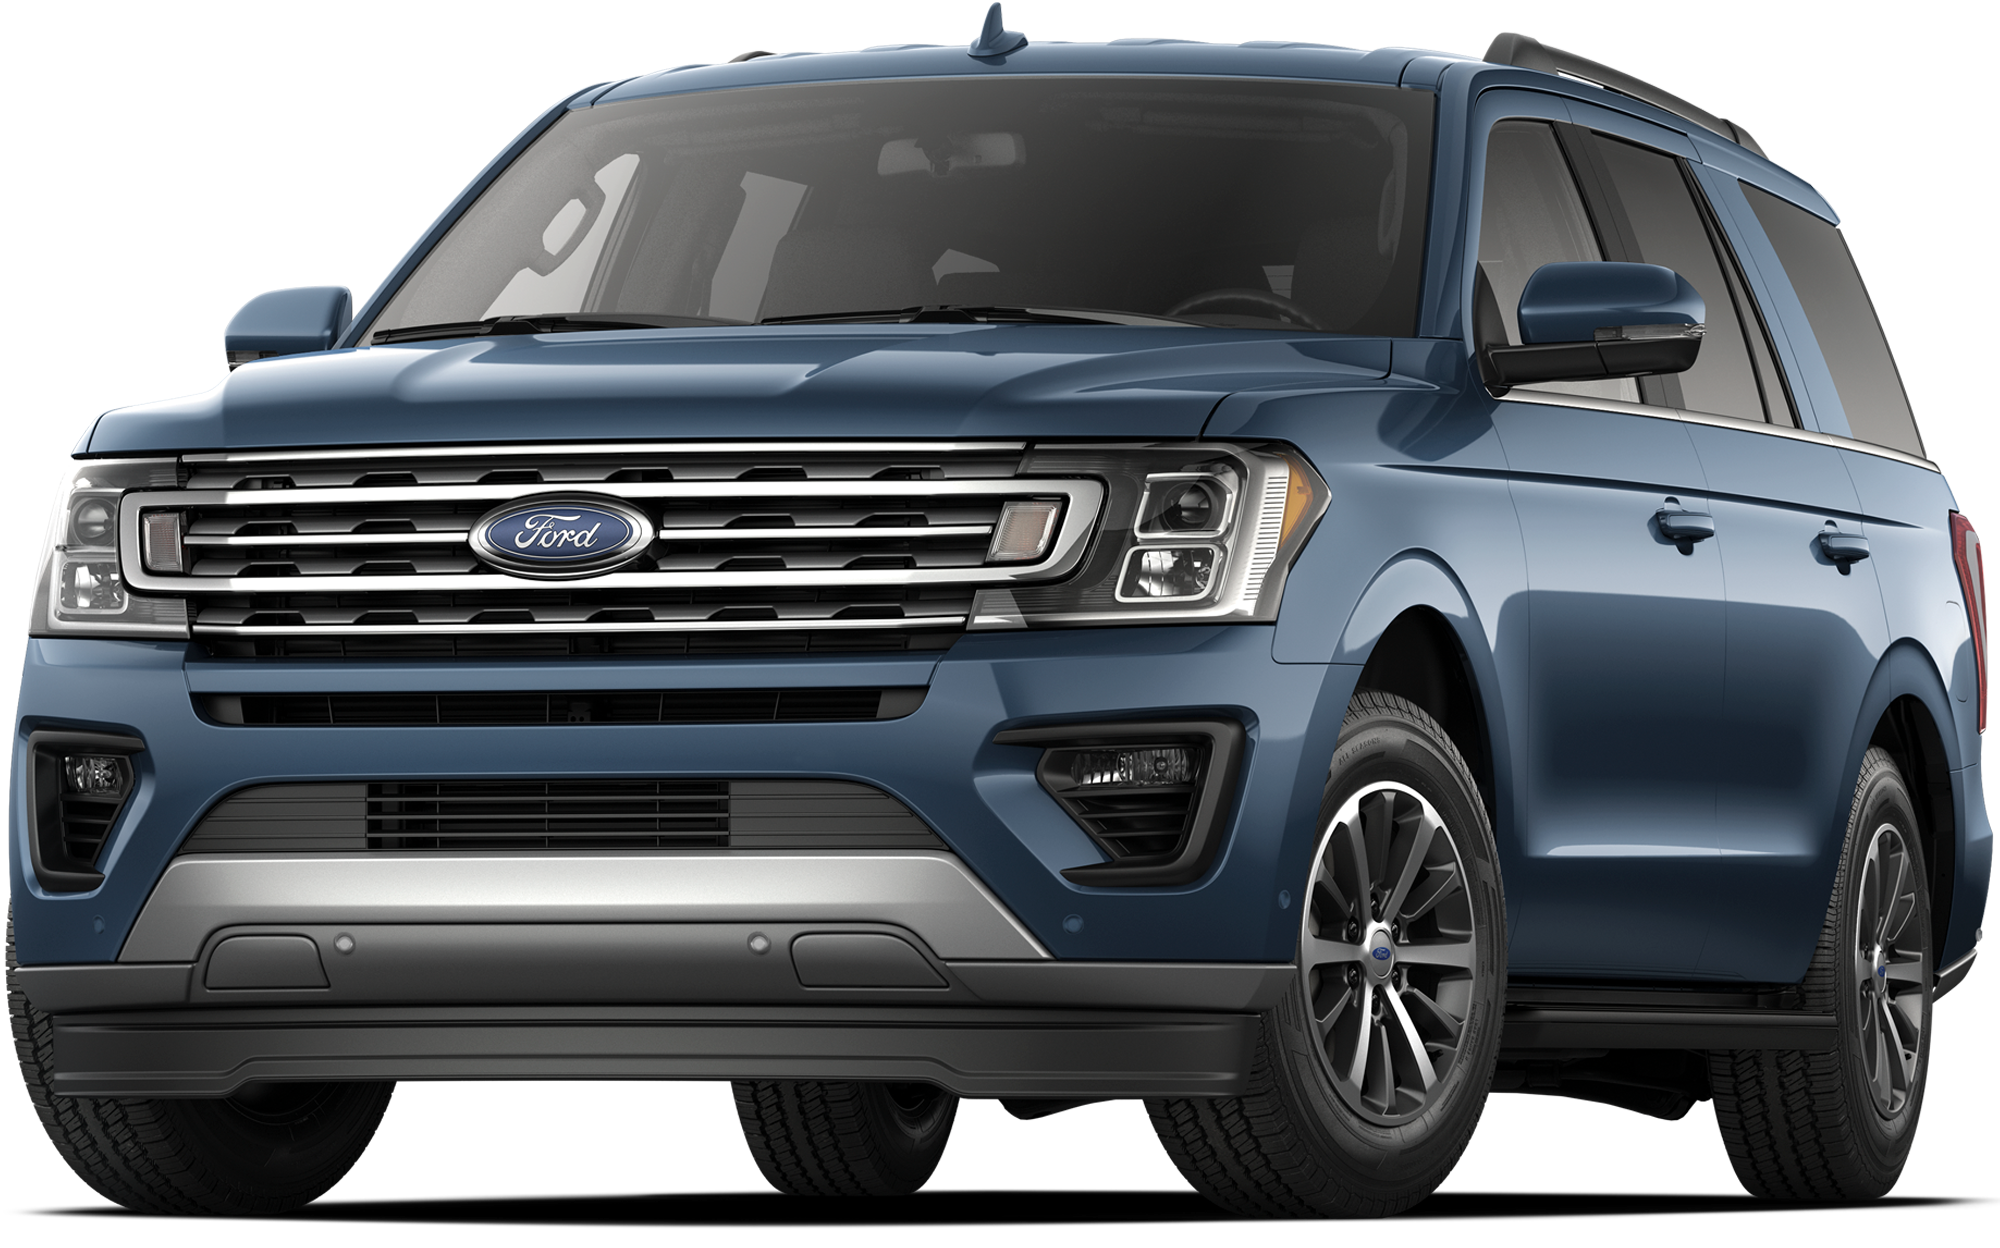 Ron Carter Ford Alvin >> 2020 Ford Expedition Incentives, Specials & Offers in Alvin TX